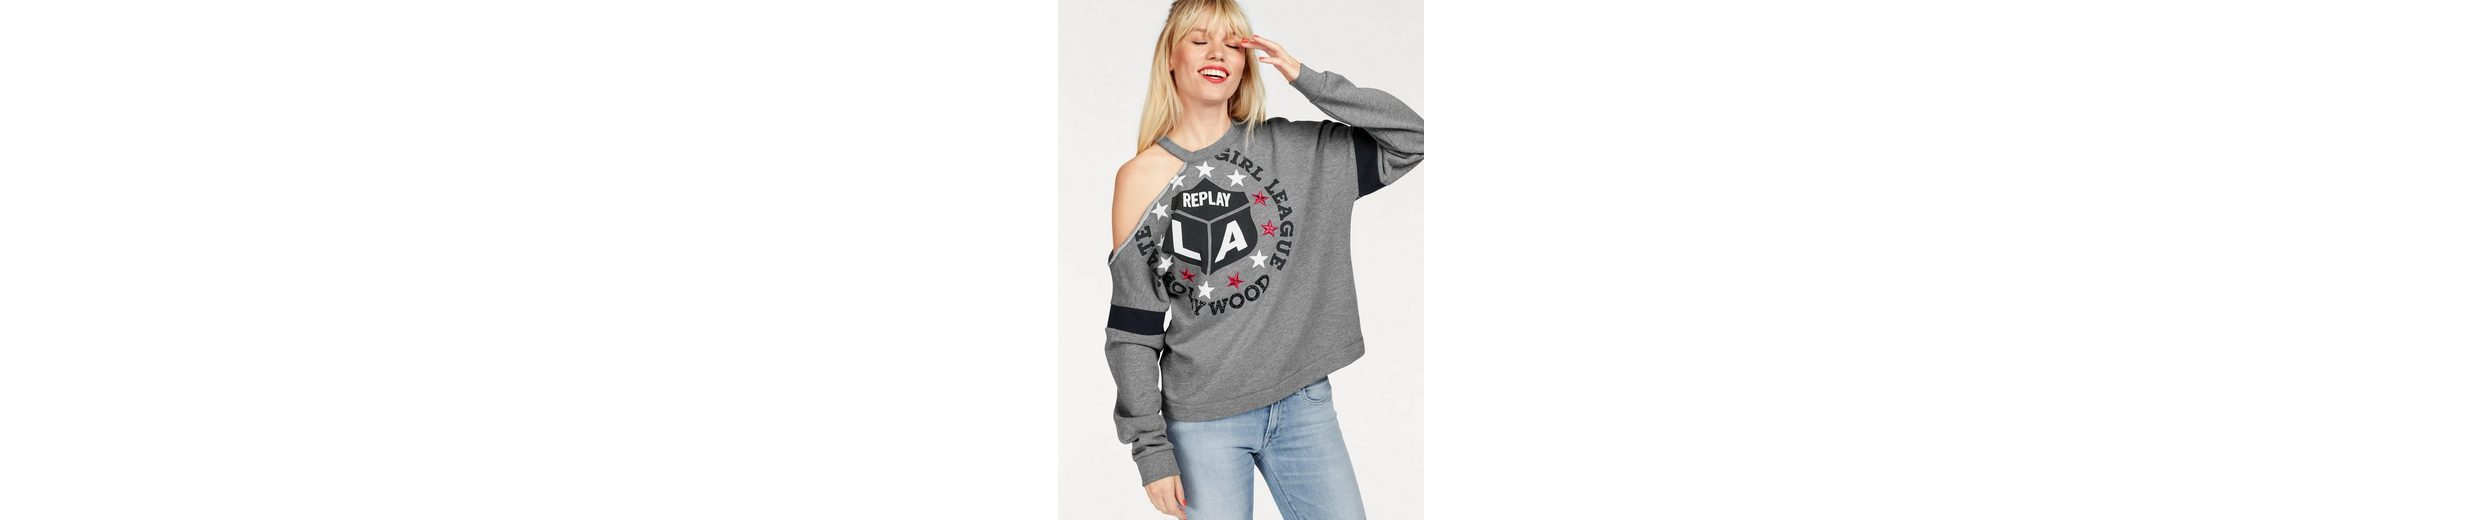 Replay Sweatshirt, mit Cut-Out an der Schulter